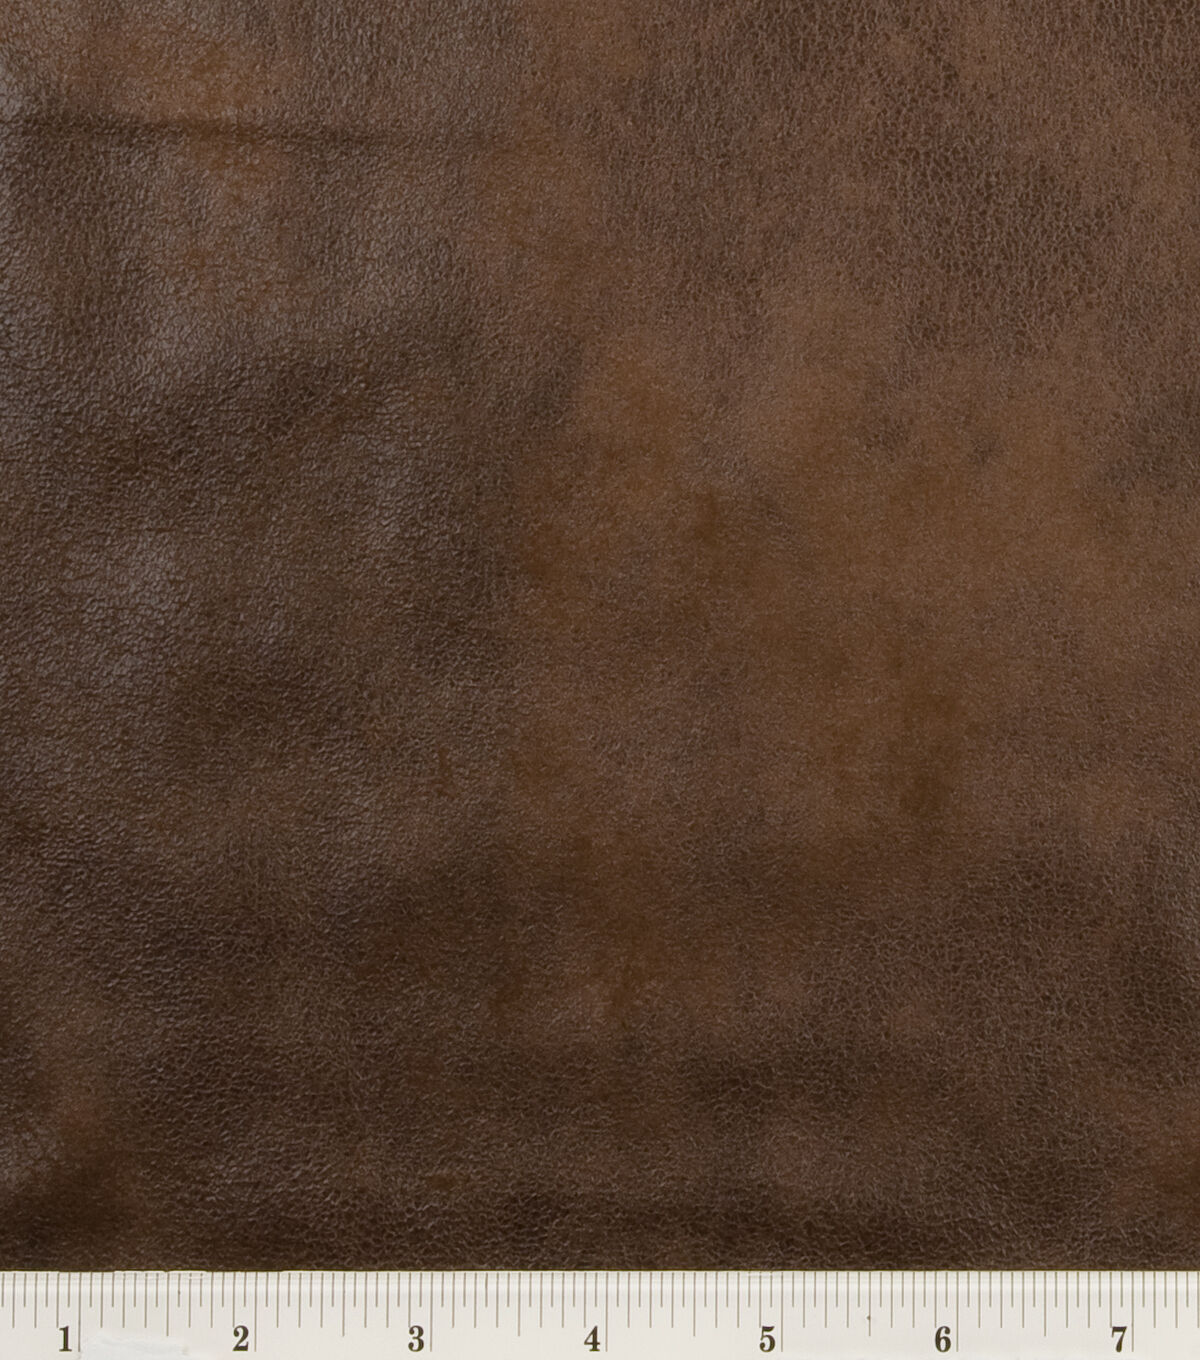 Buffel Burgundy Red Suede Animal Distressed Aged Leatherette Upholstery Fabric